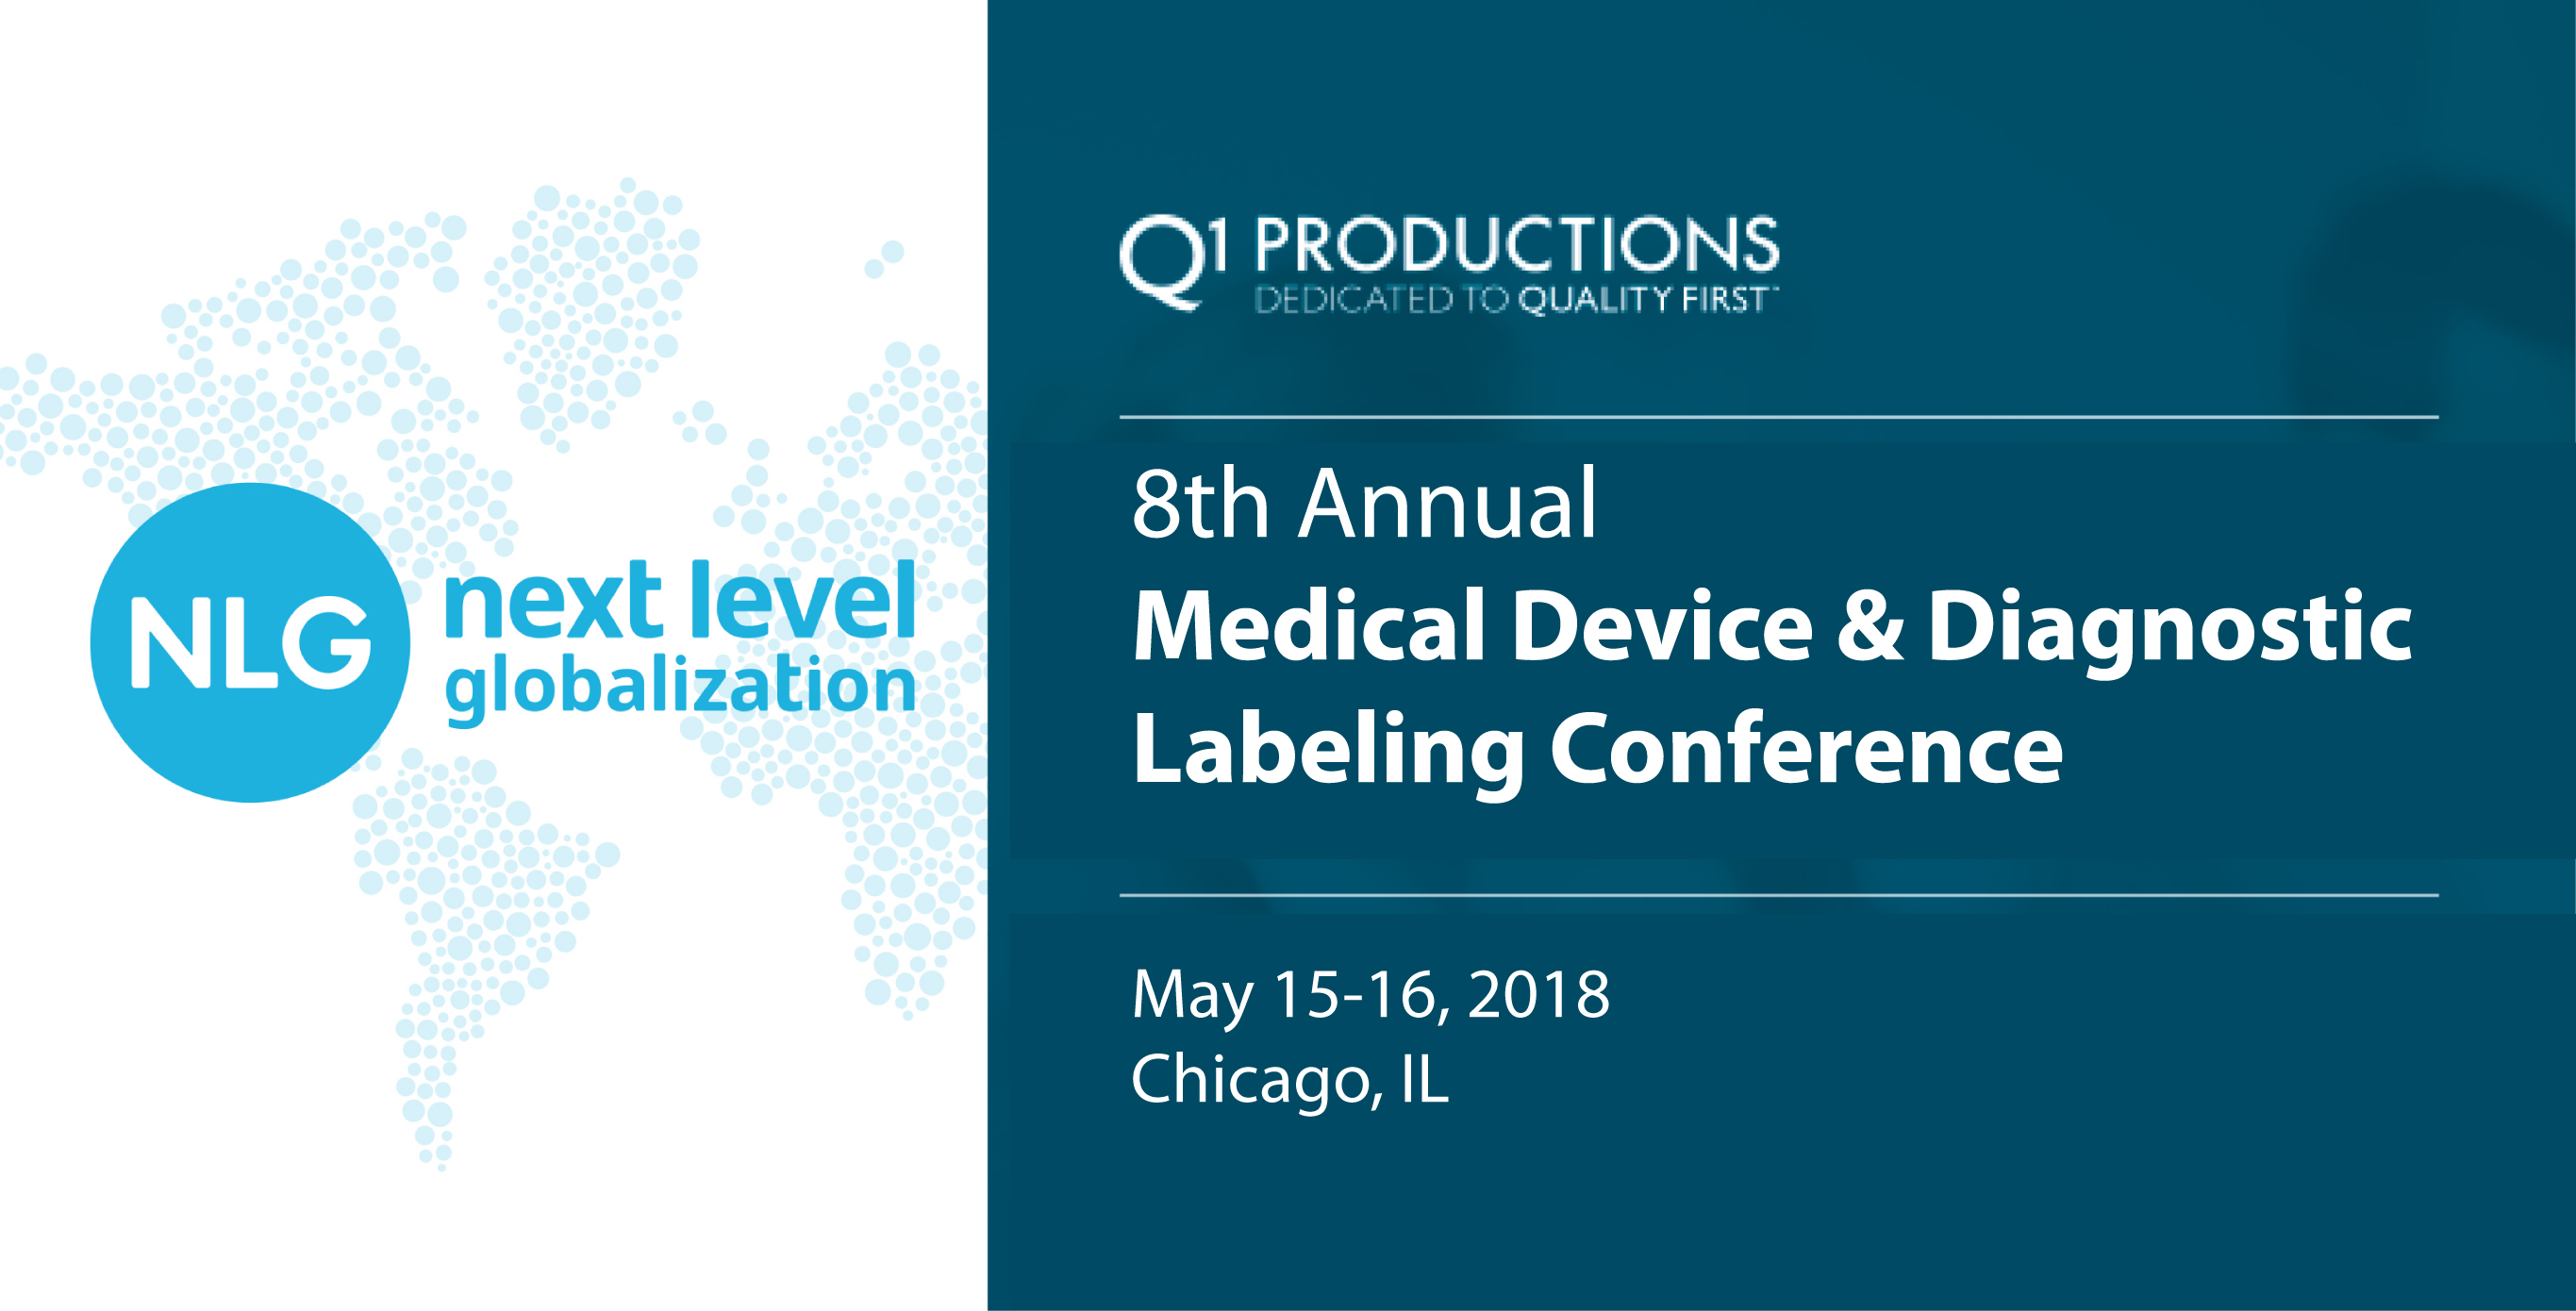 NLG at Q1 Conference 2018